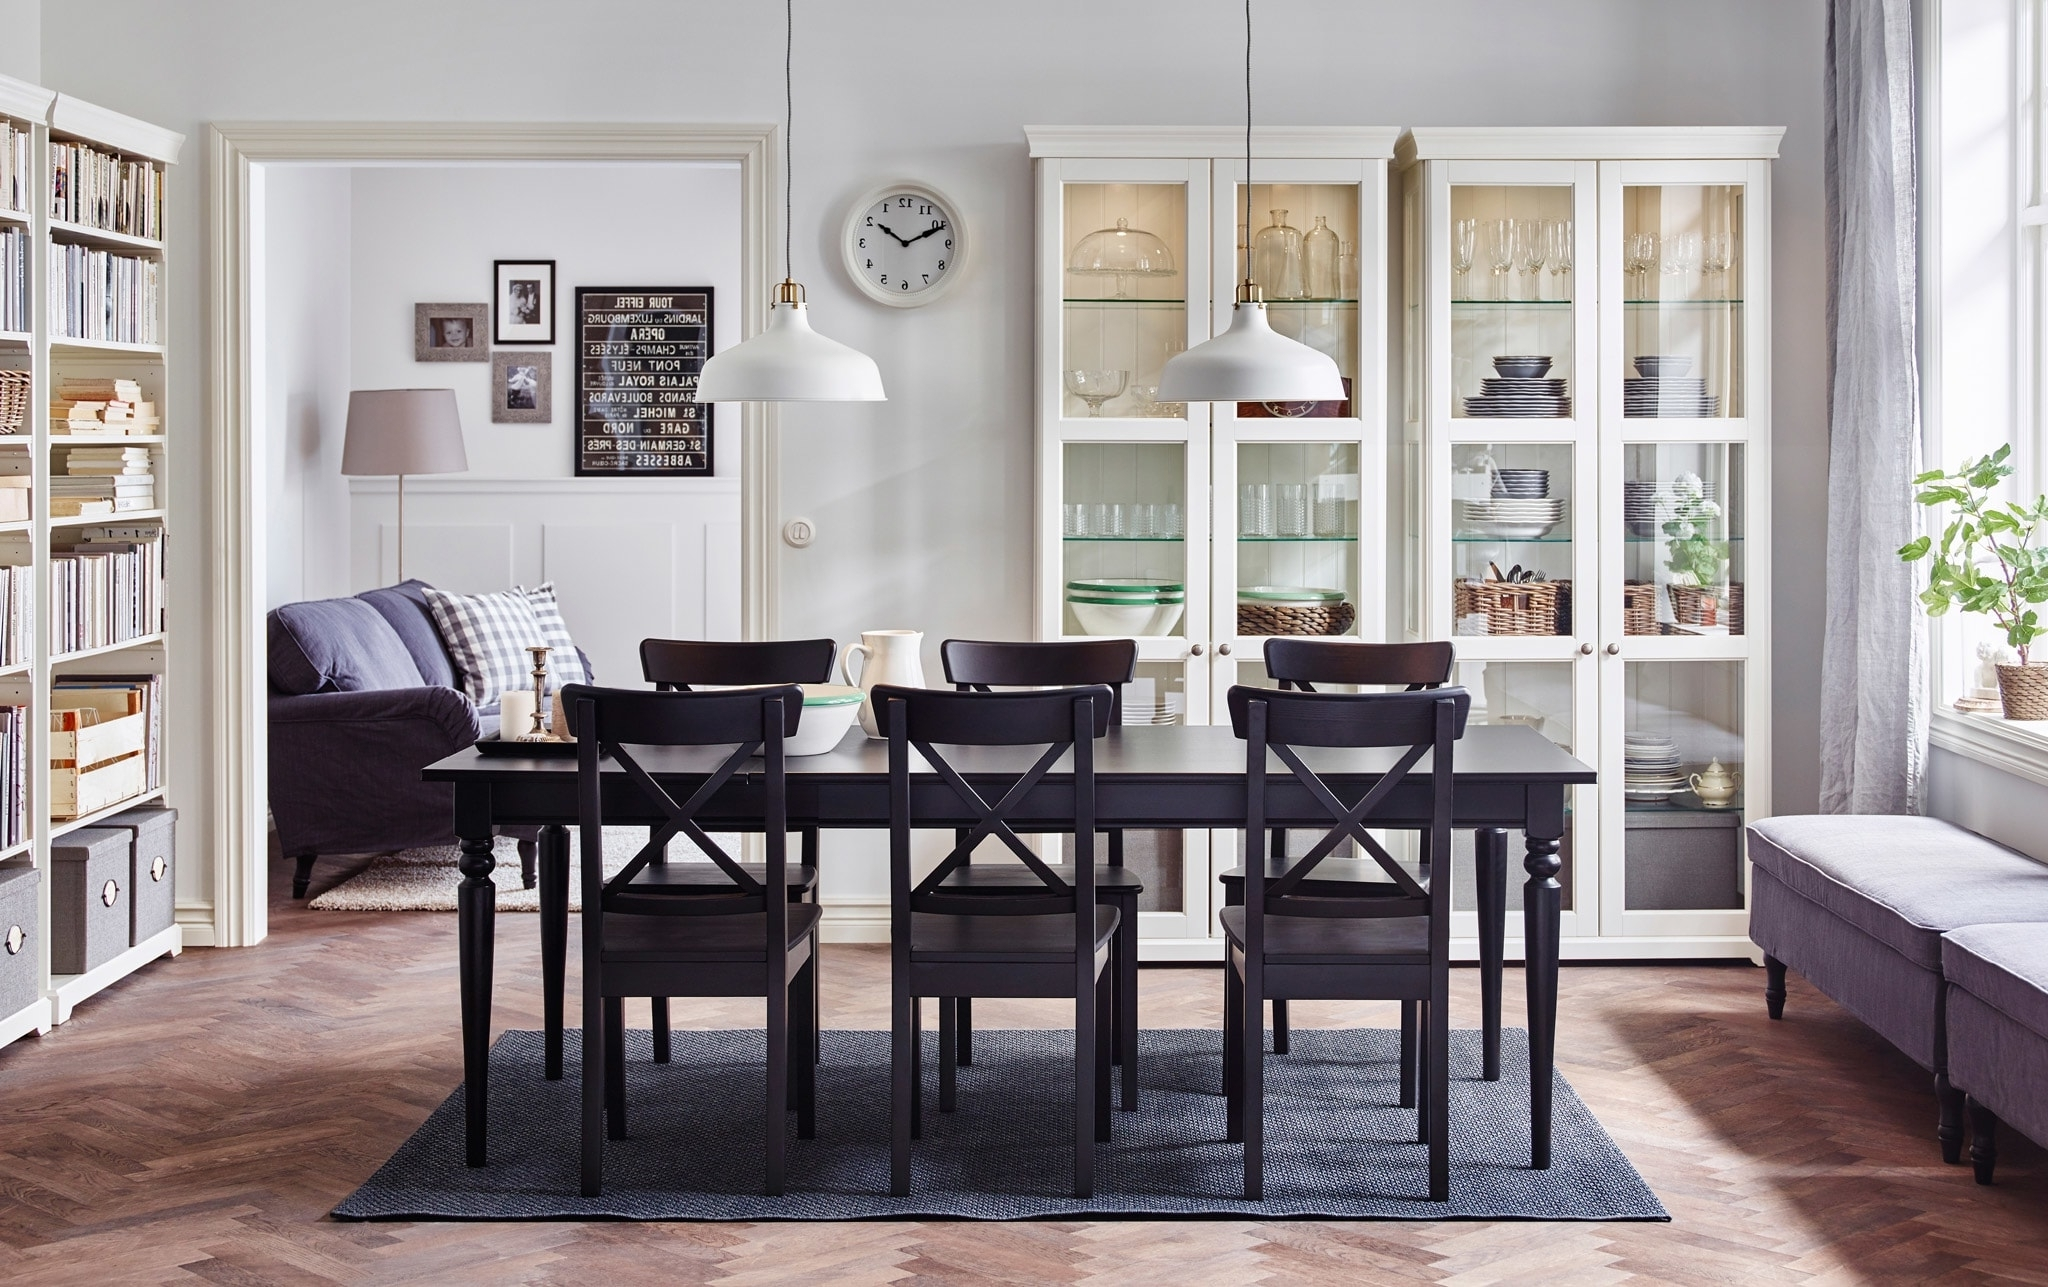 Dining Room Furniture & Ideas (View 10 of 25)